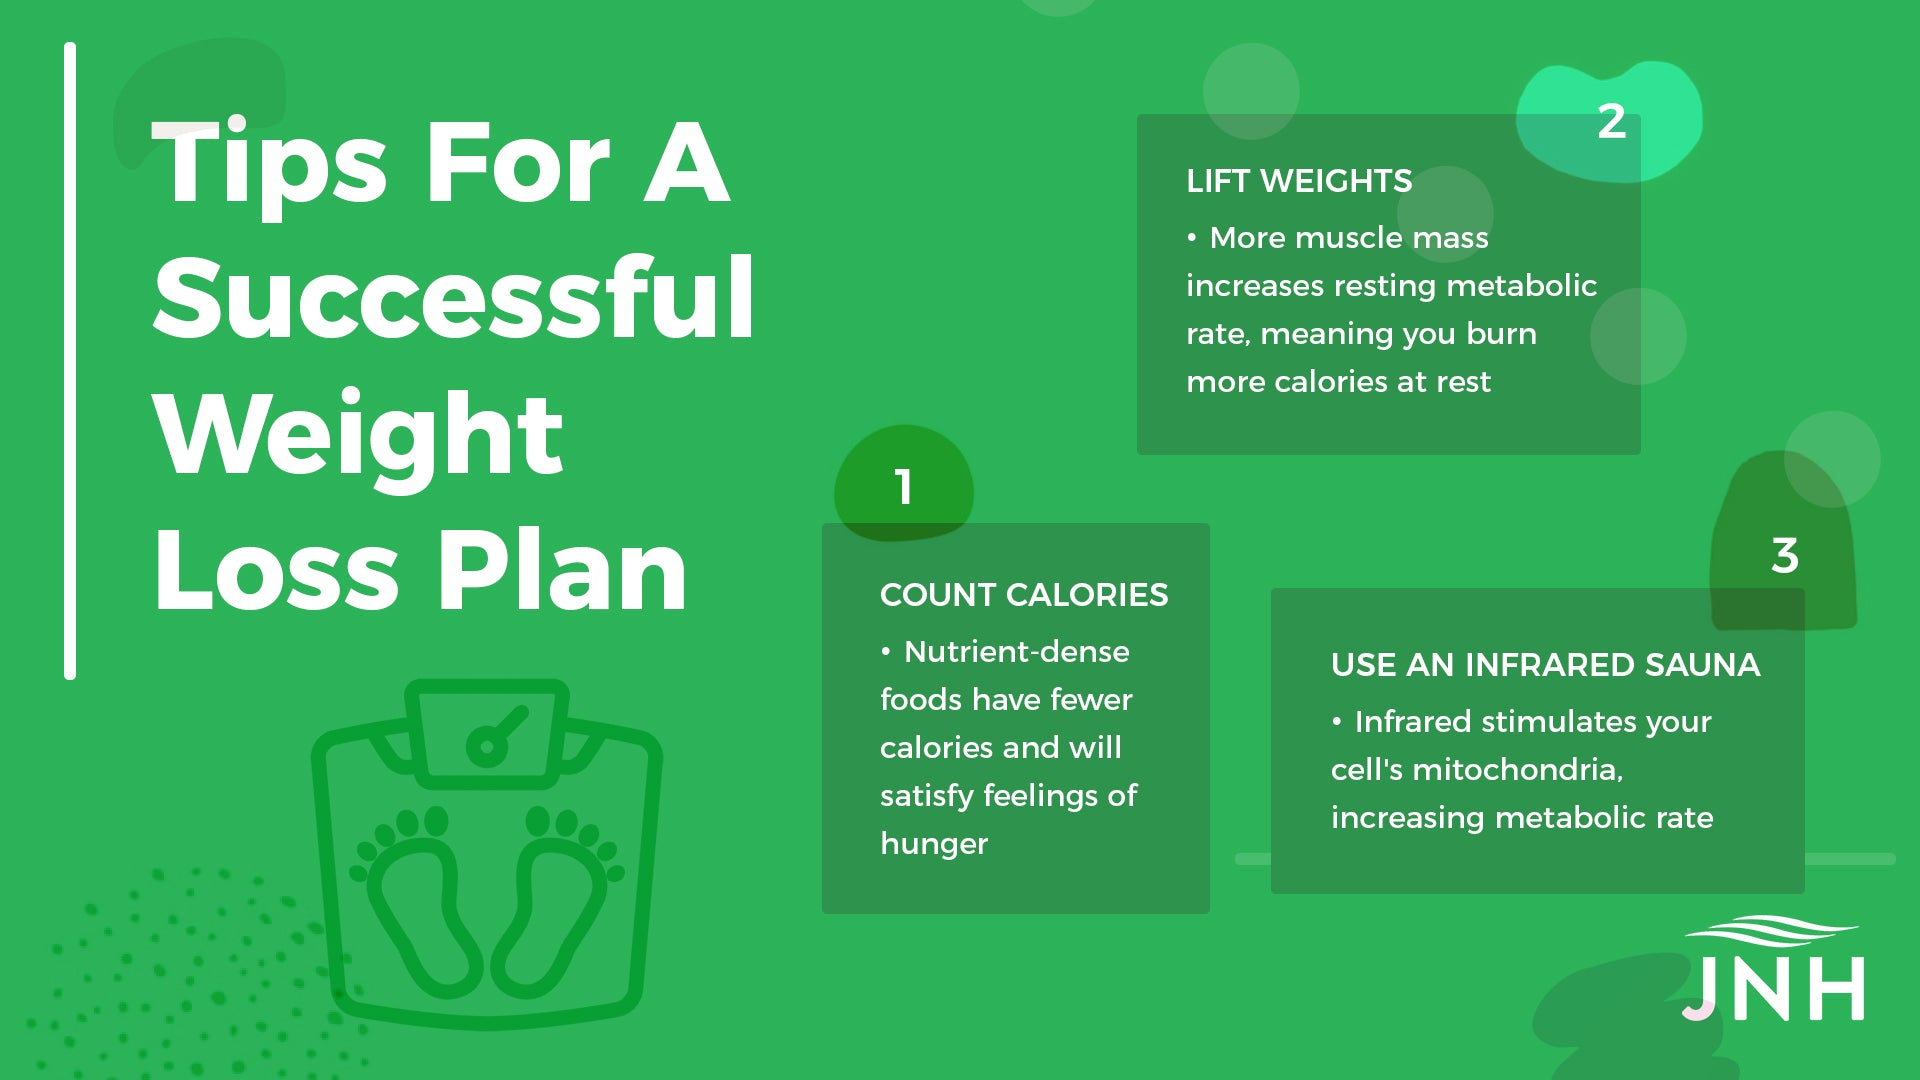 Tips For A Successful Weight Loss Plan 1. Count Calories -Nutrient-dense foods have fewer calories and will satisfy feelings of hunger 2. Lift Weights -more muscle mass increases resting metabolic rate, meaning you burn more calories at rest 3. Use An Infrared Sauna -Infrared stimulates your cell's mitochondria, increasing metabolic rate